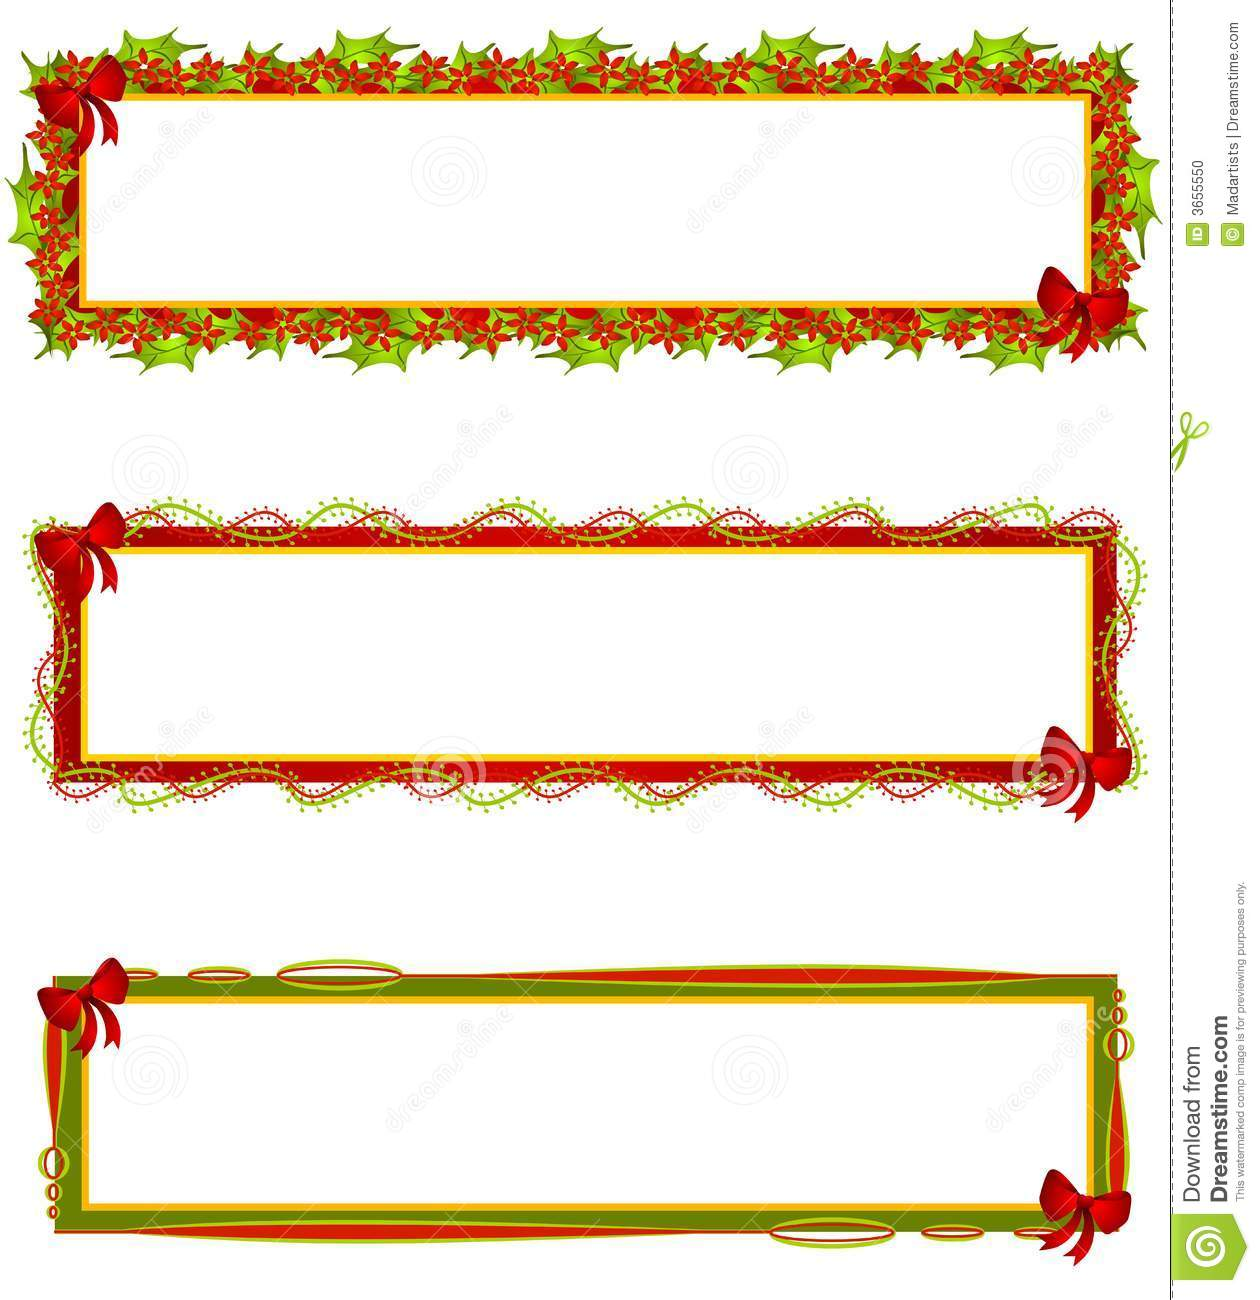 ribbon%20banner%20clipart